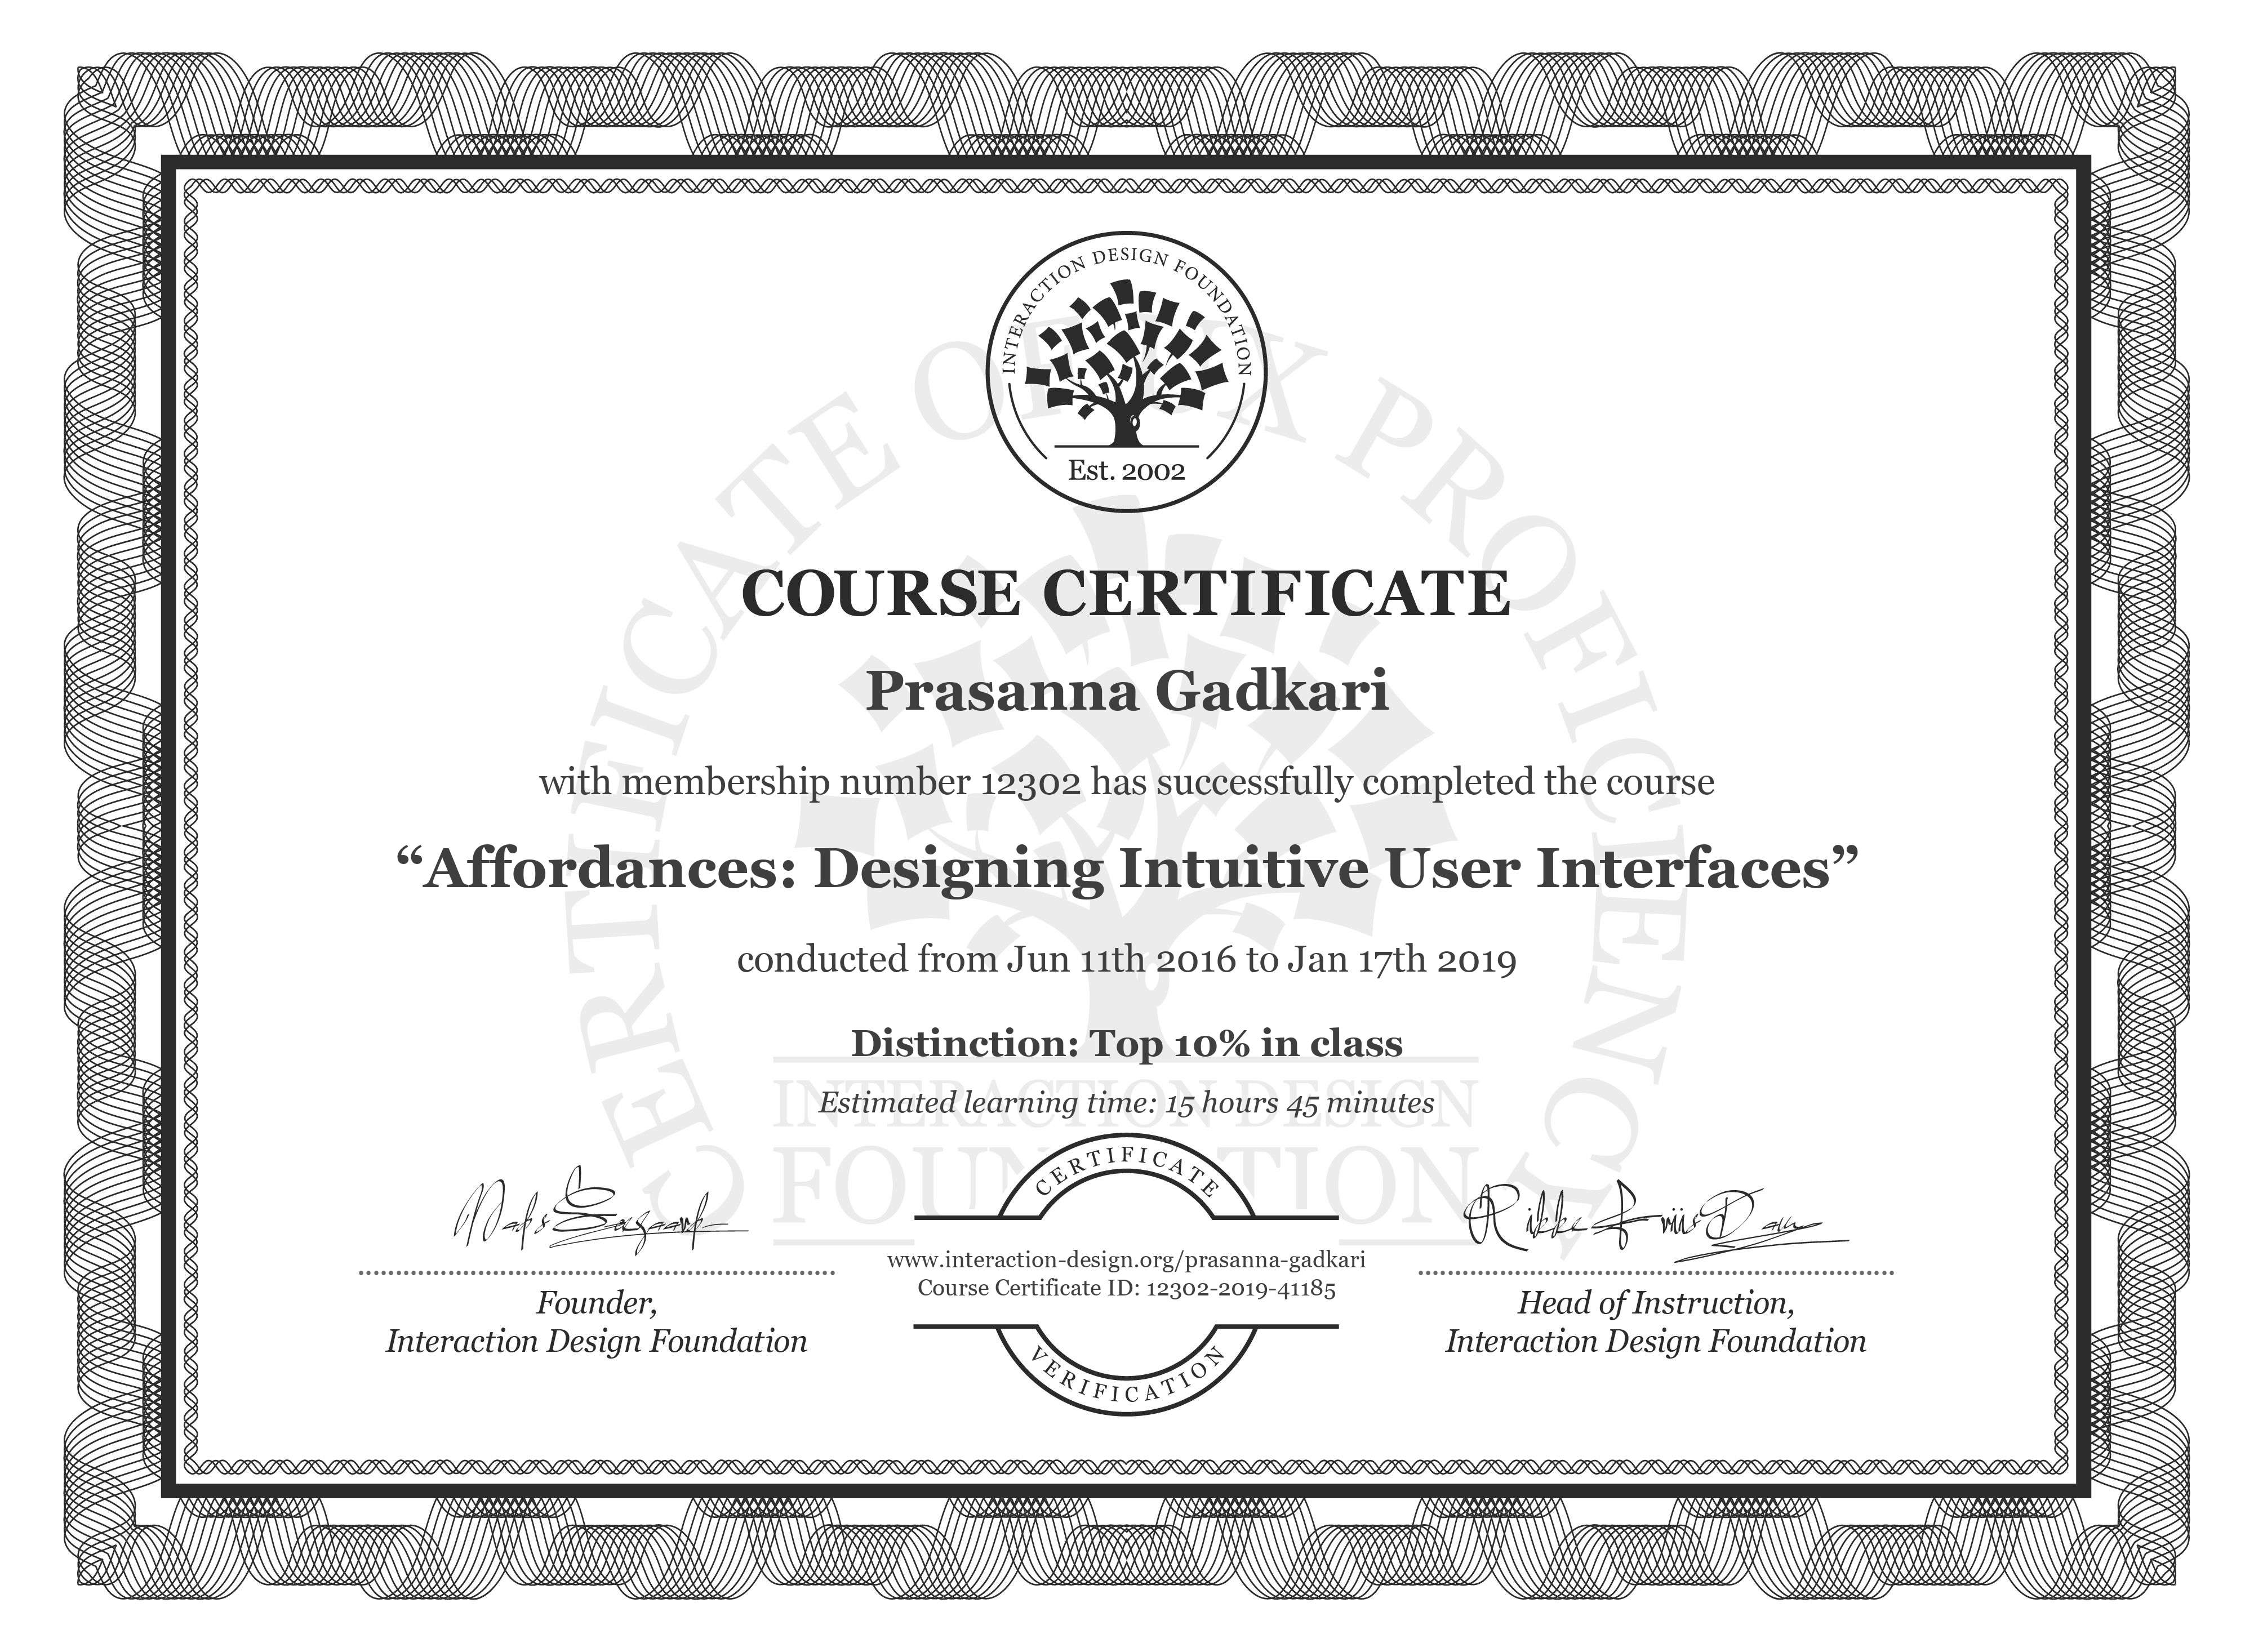 Prasanna Gadkari: Course Certificate - Affordances: Designing Intuitive User Interfaces